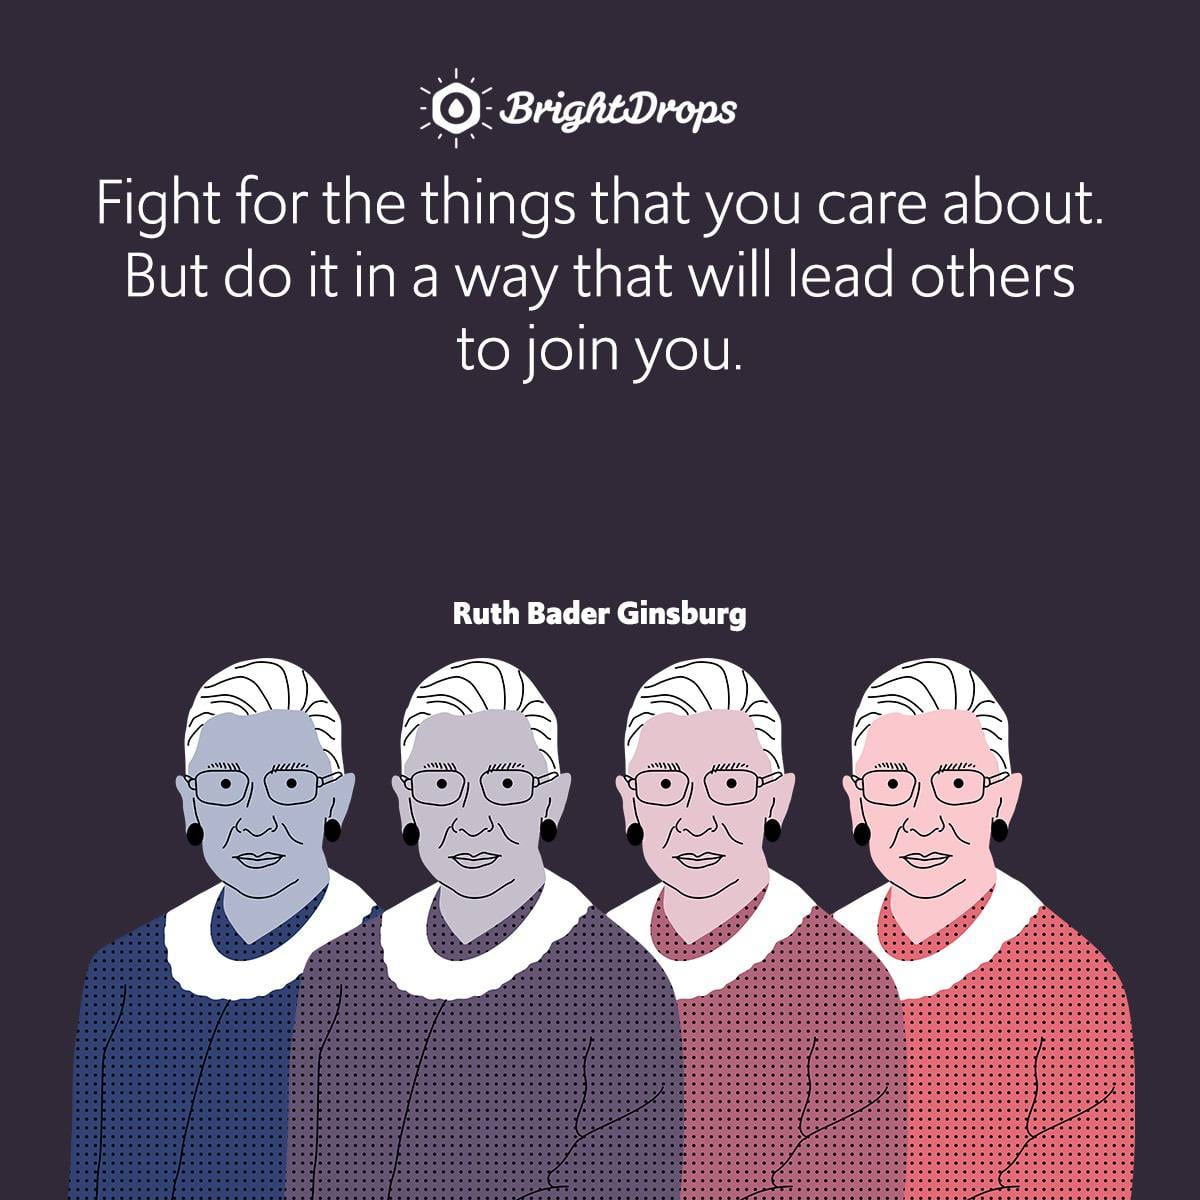 Fight for the things that you care about. But do it in a way that will lead others to join you.